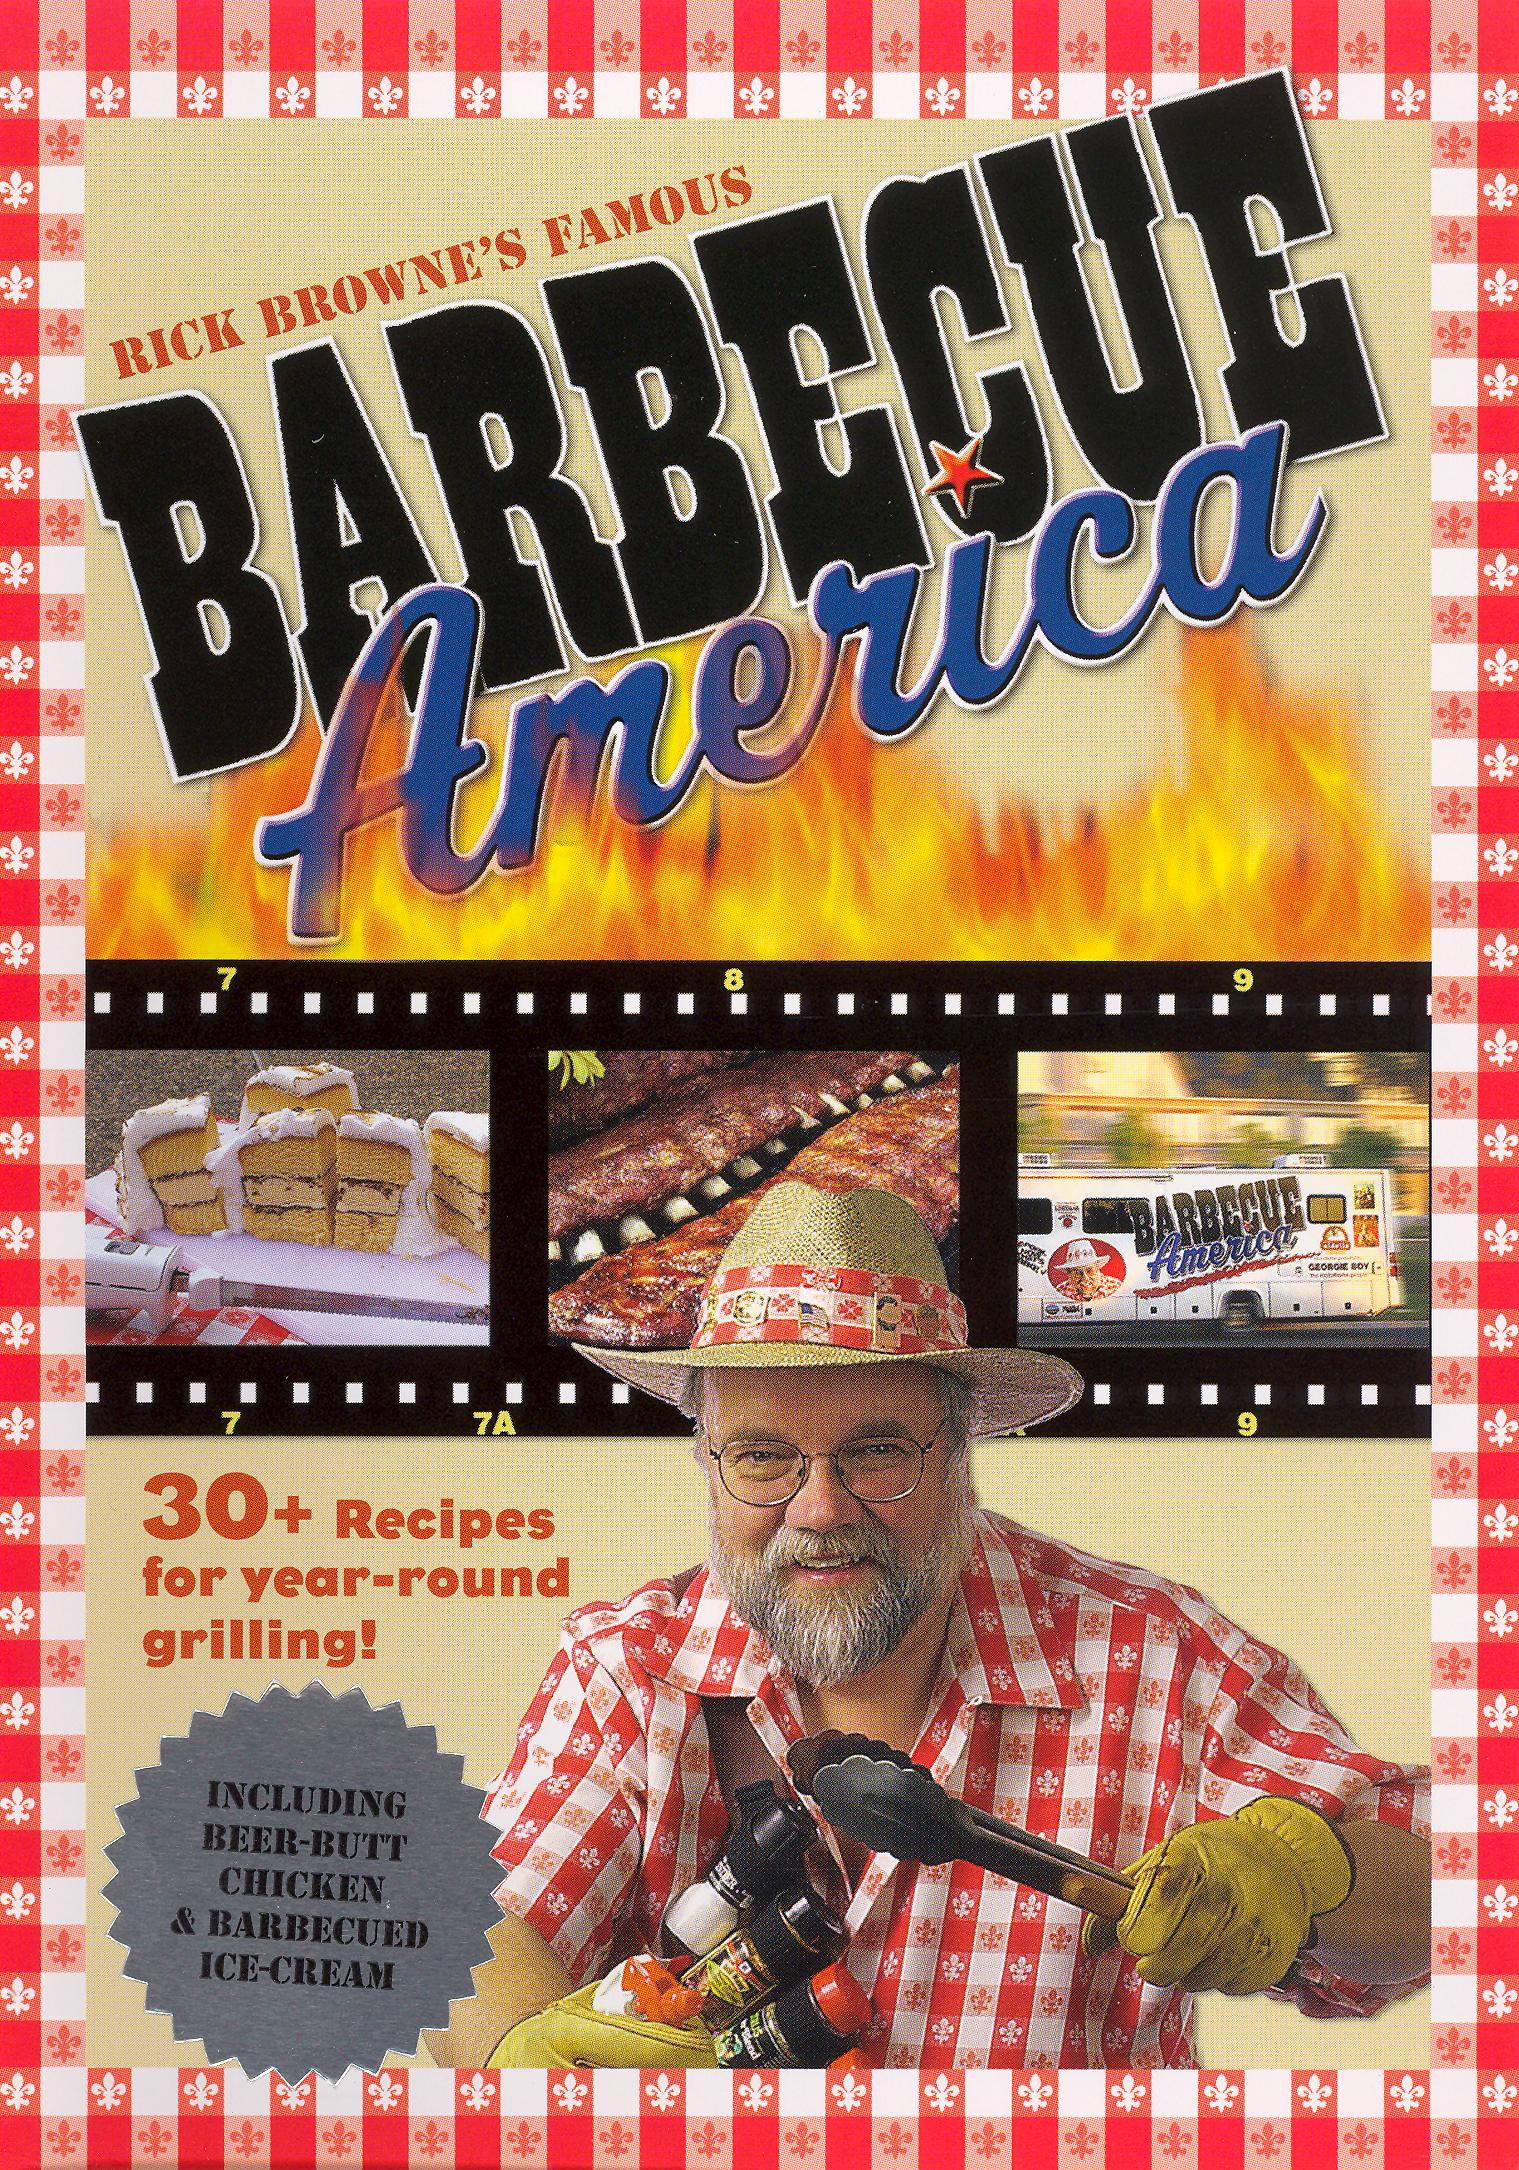 Rick Browne's Famous Barbecue America